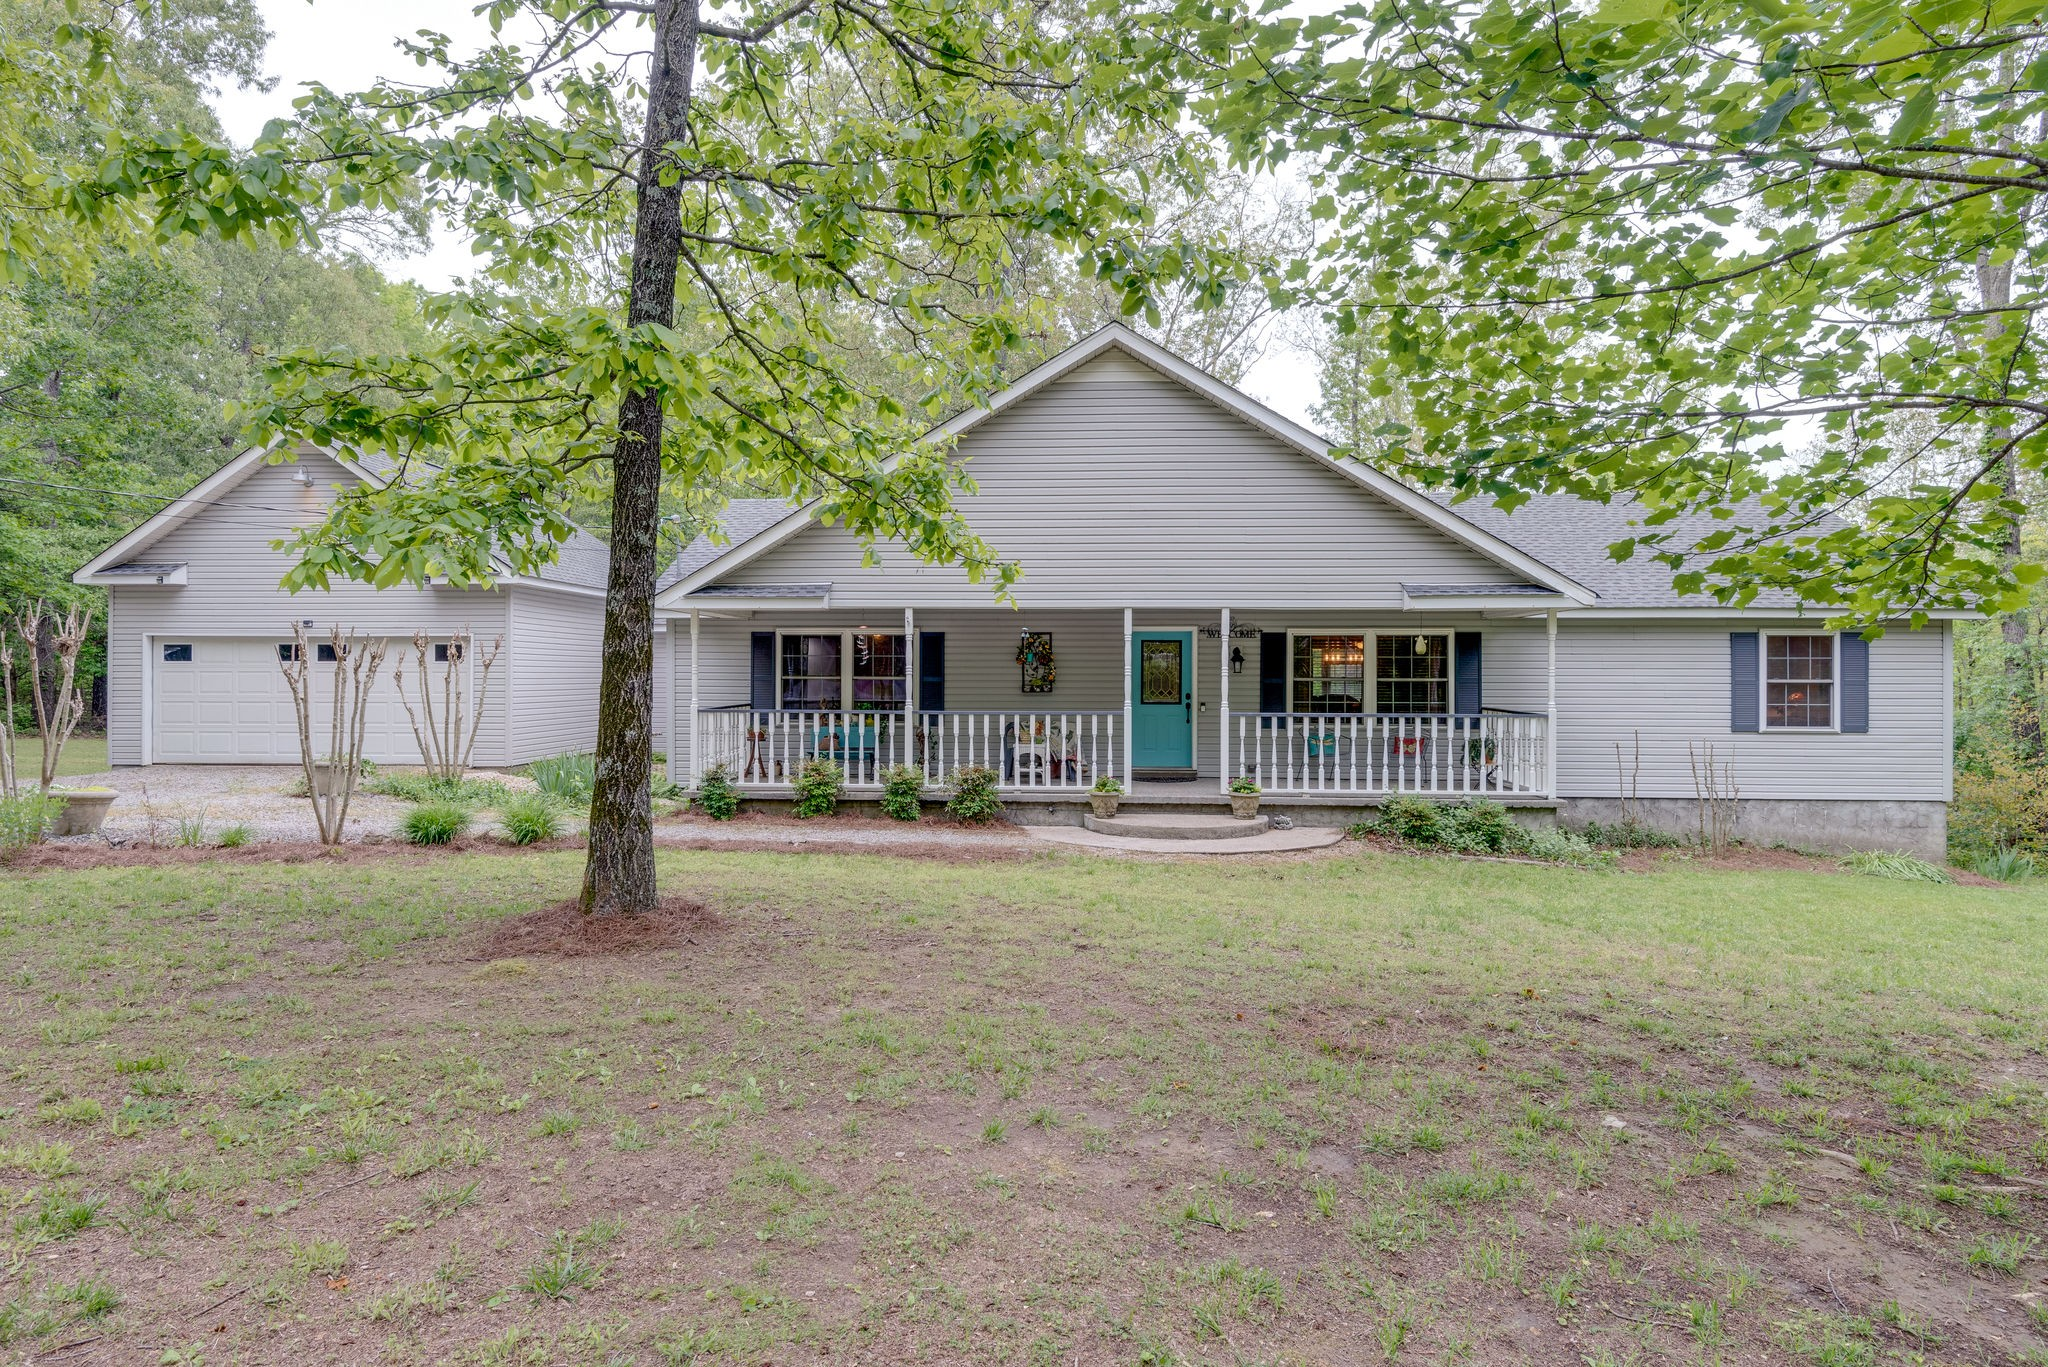 1000 Crane Ct, Kingston Springs, TN 37082 - Kingston Springs, TN real estate listing